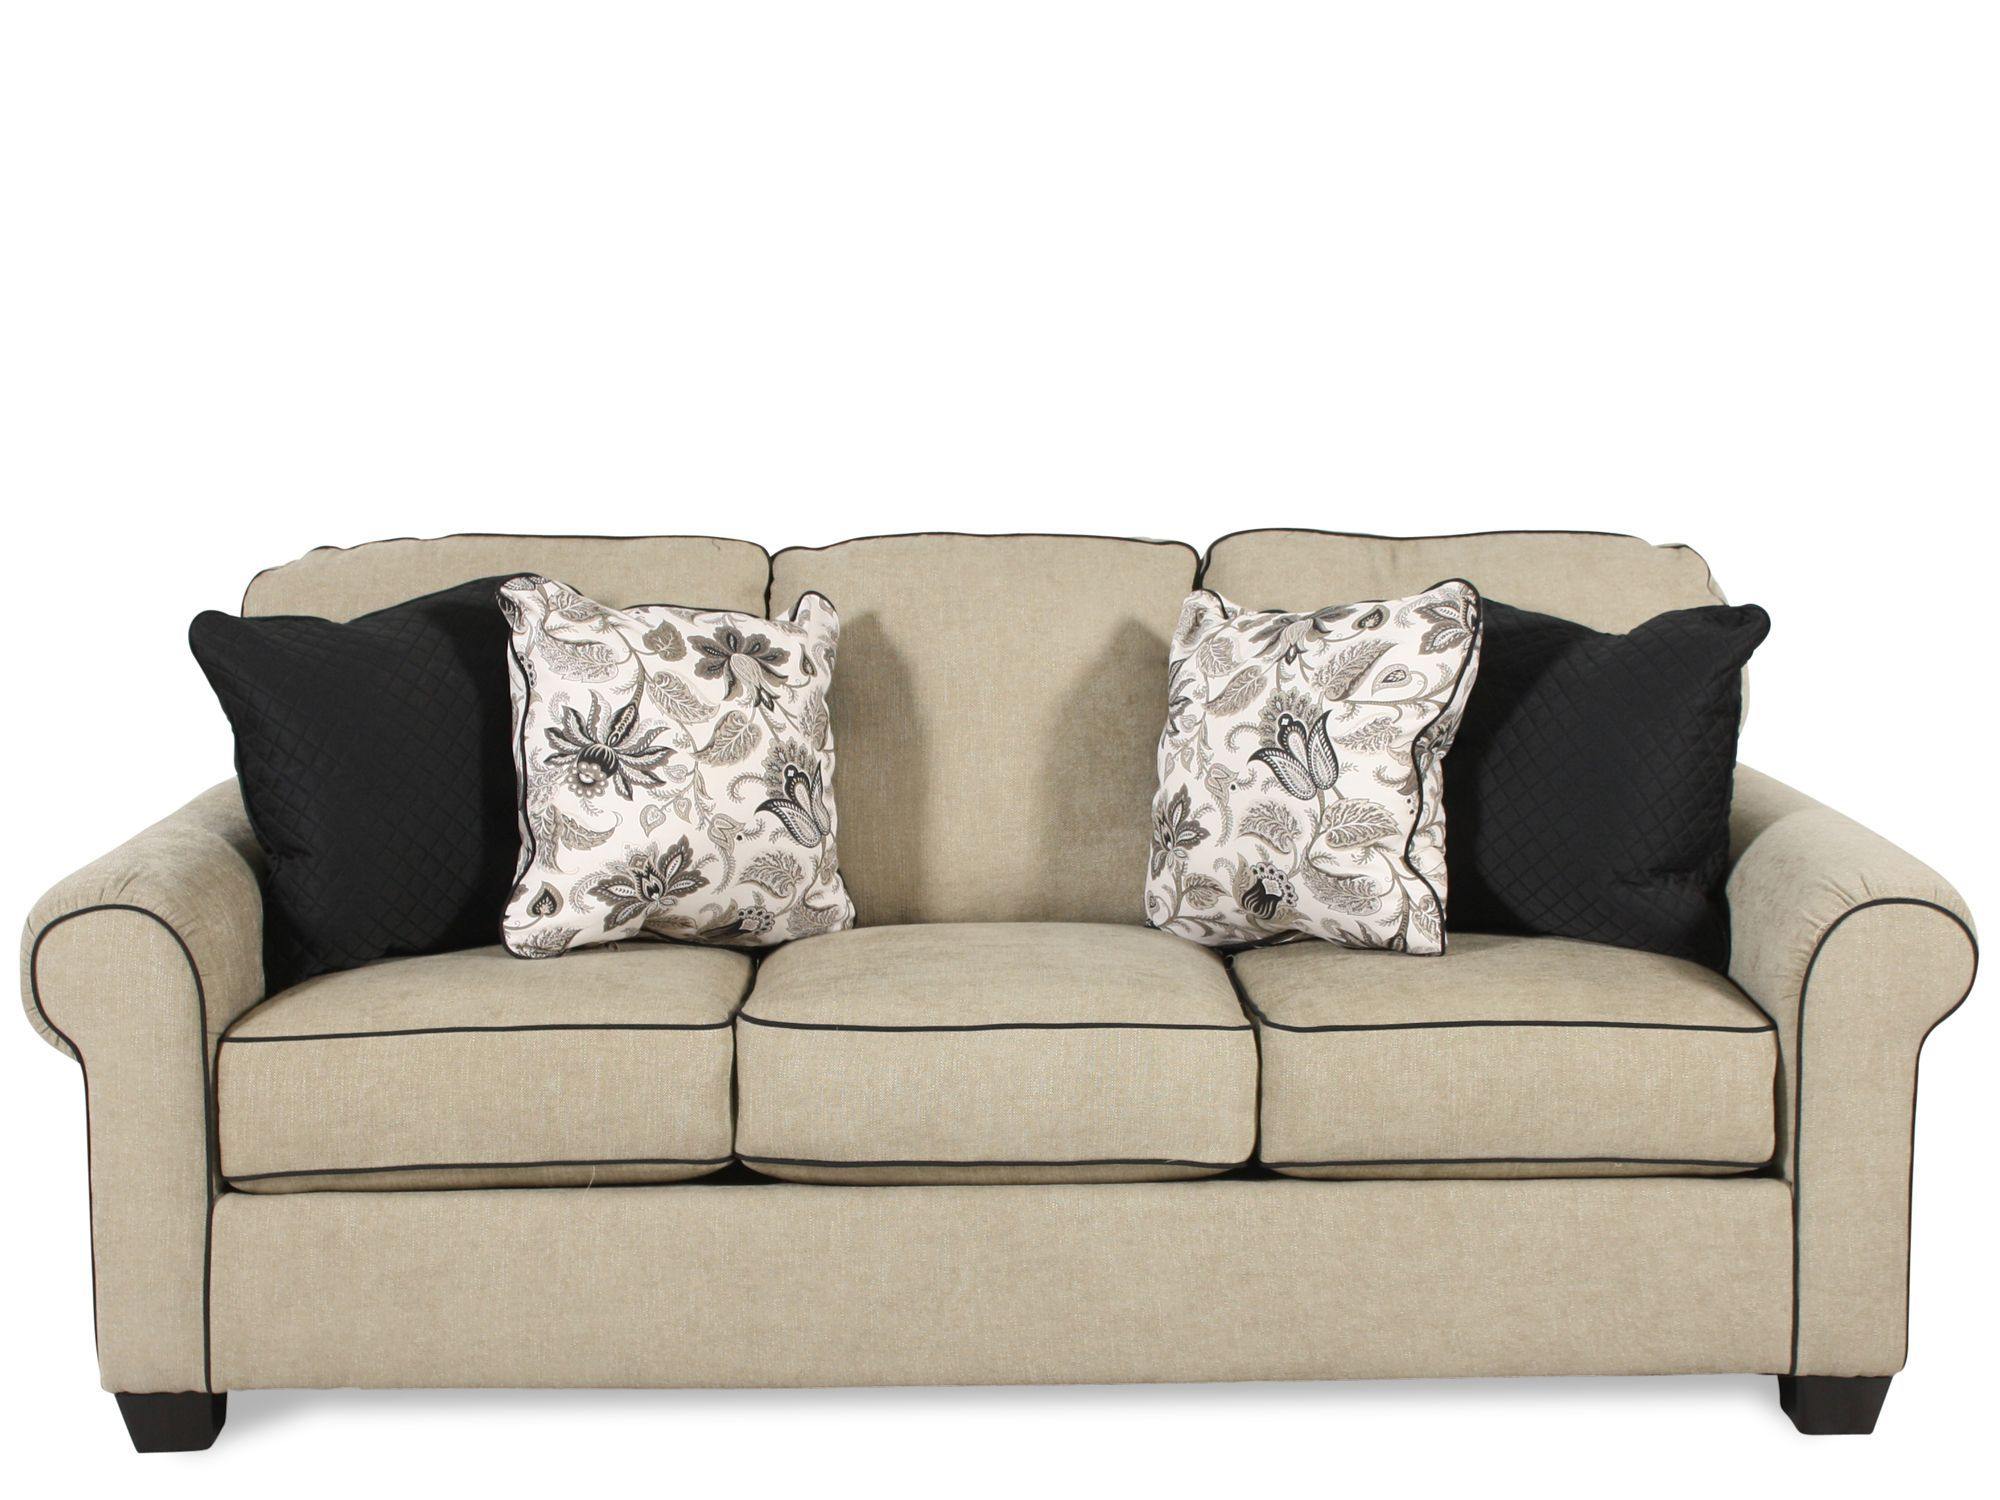 Best Mathis Brothers Couch Cheap Living Room Furniture 400 x 300